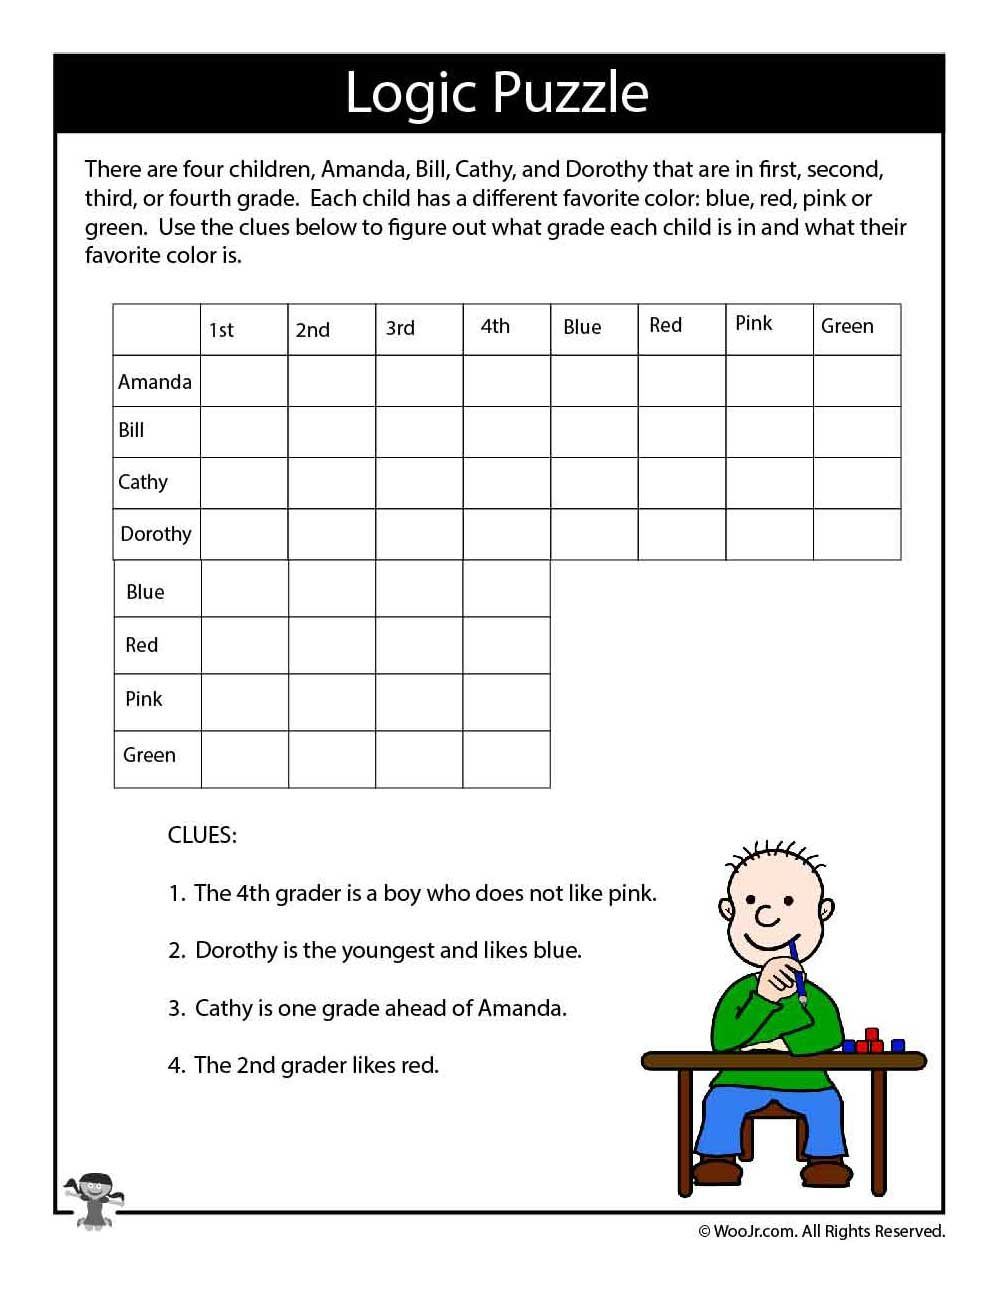 hard logic puzzle for kids free printables for children logic puzzles puzzles for kids. Black Bedroom Furniture Sets. Home Design Ideas